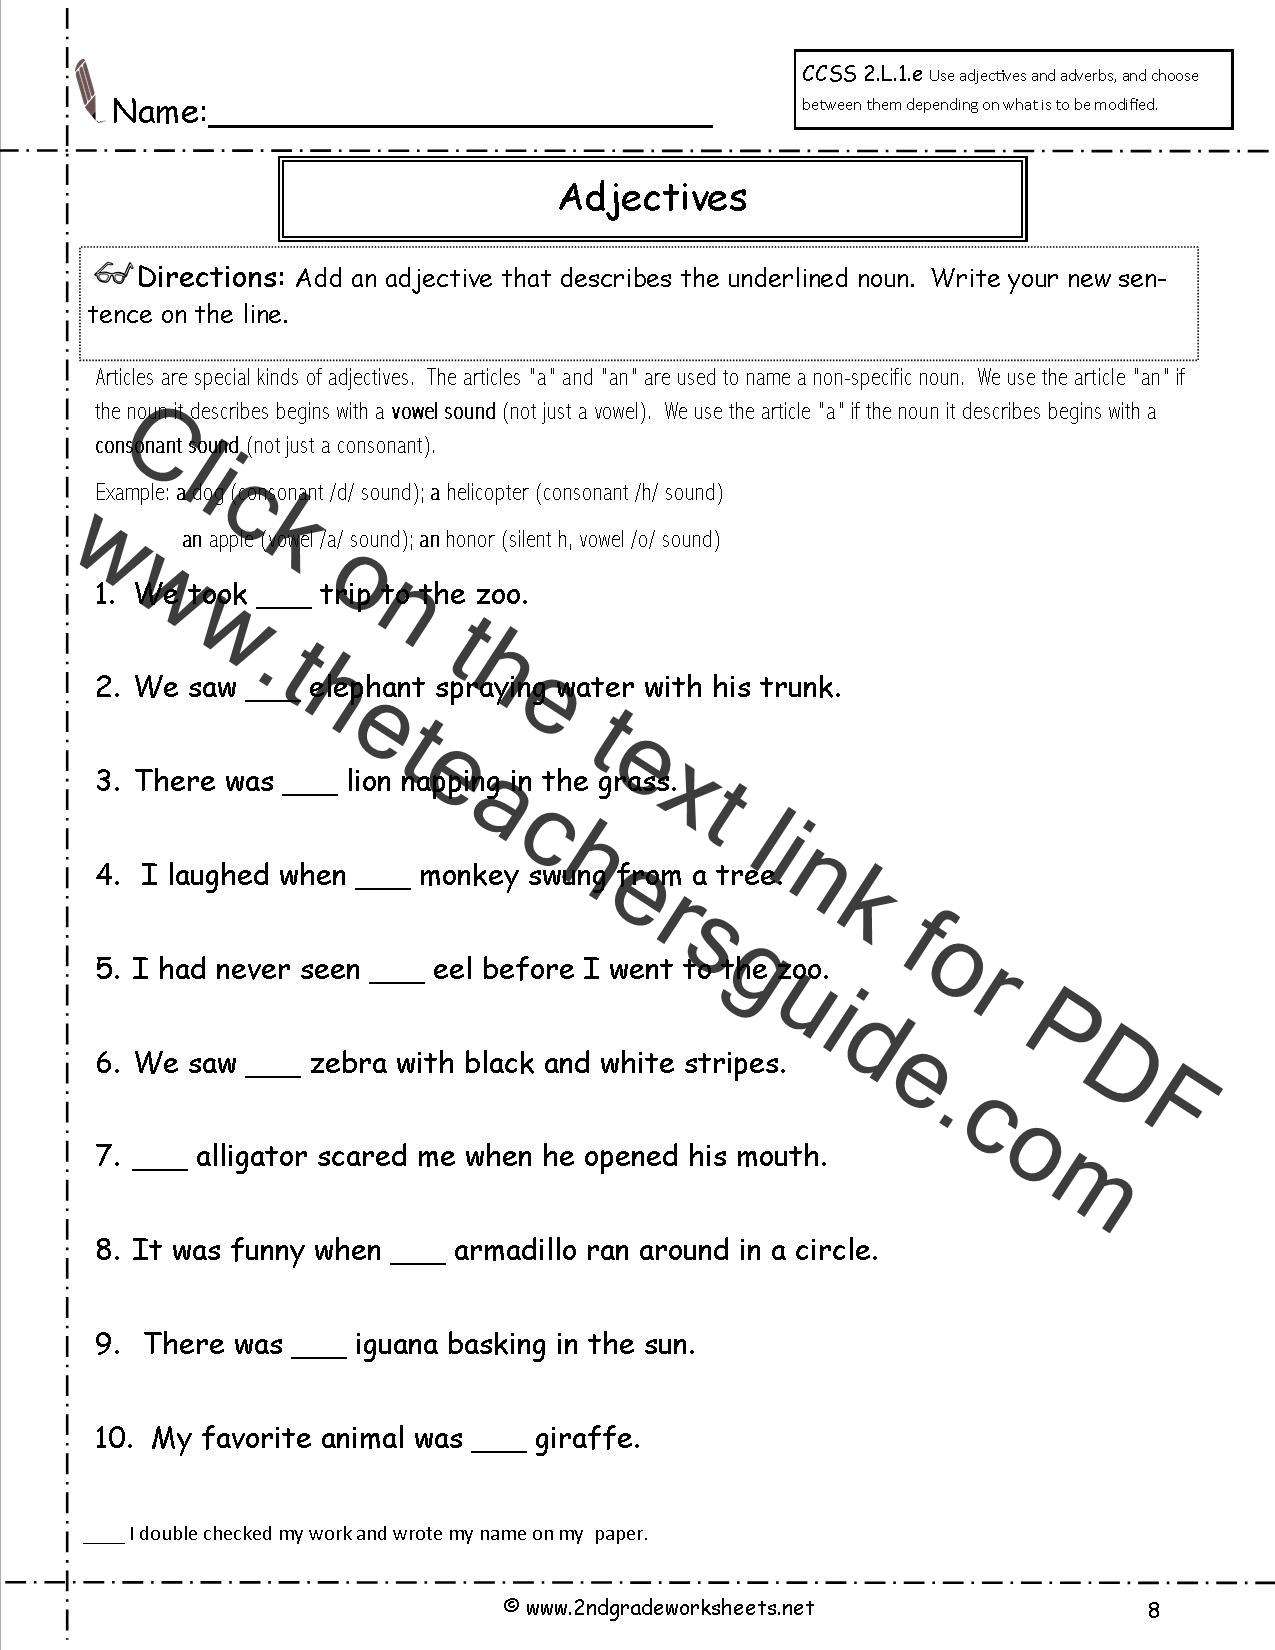 Worksheets Worksheets 2nd Grade free languagegrammar worksheets and printouts adjectives worksheets